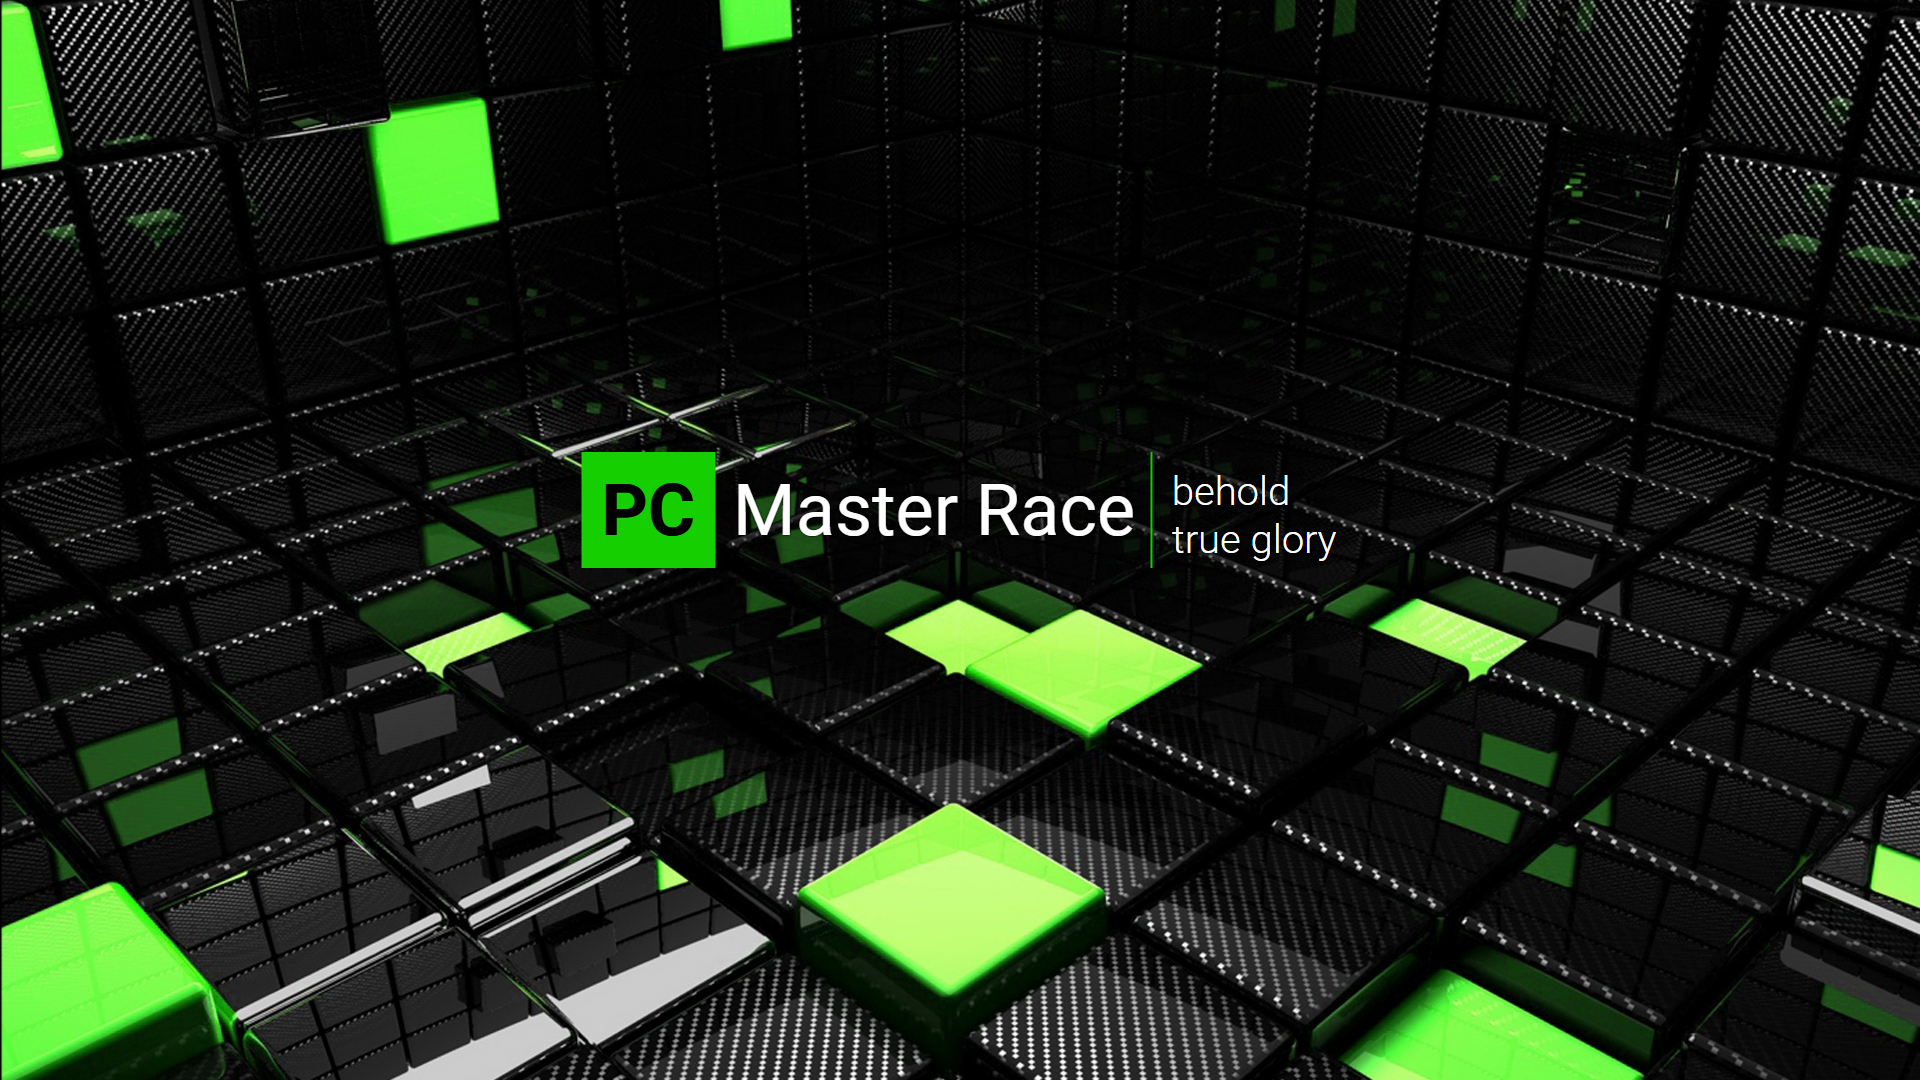 Pc Master Race Wallpaper 4k Posted By Ethan Cunningham